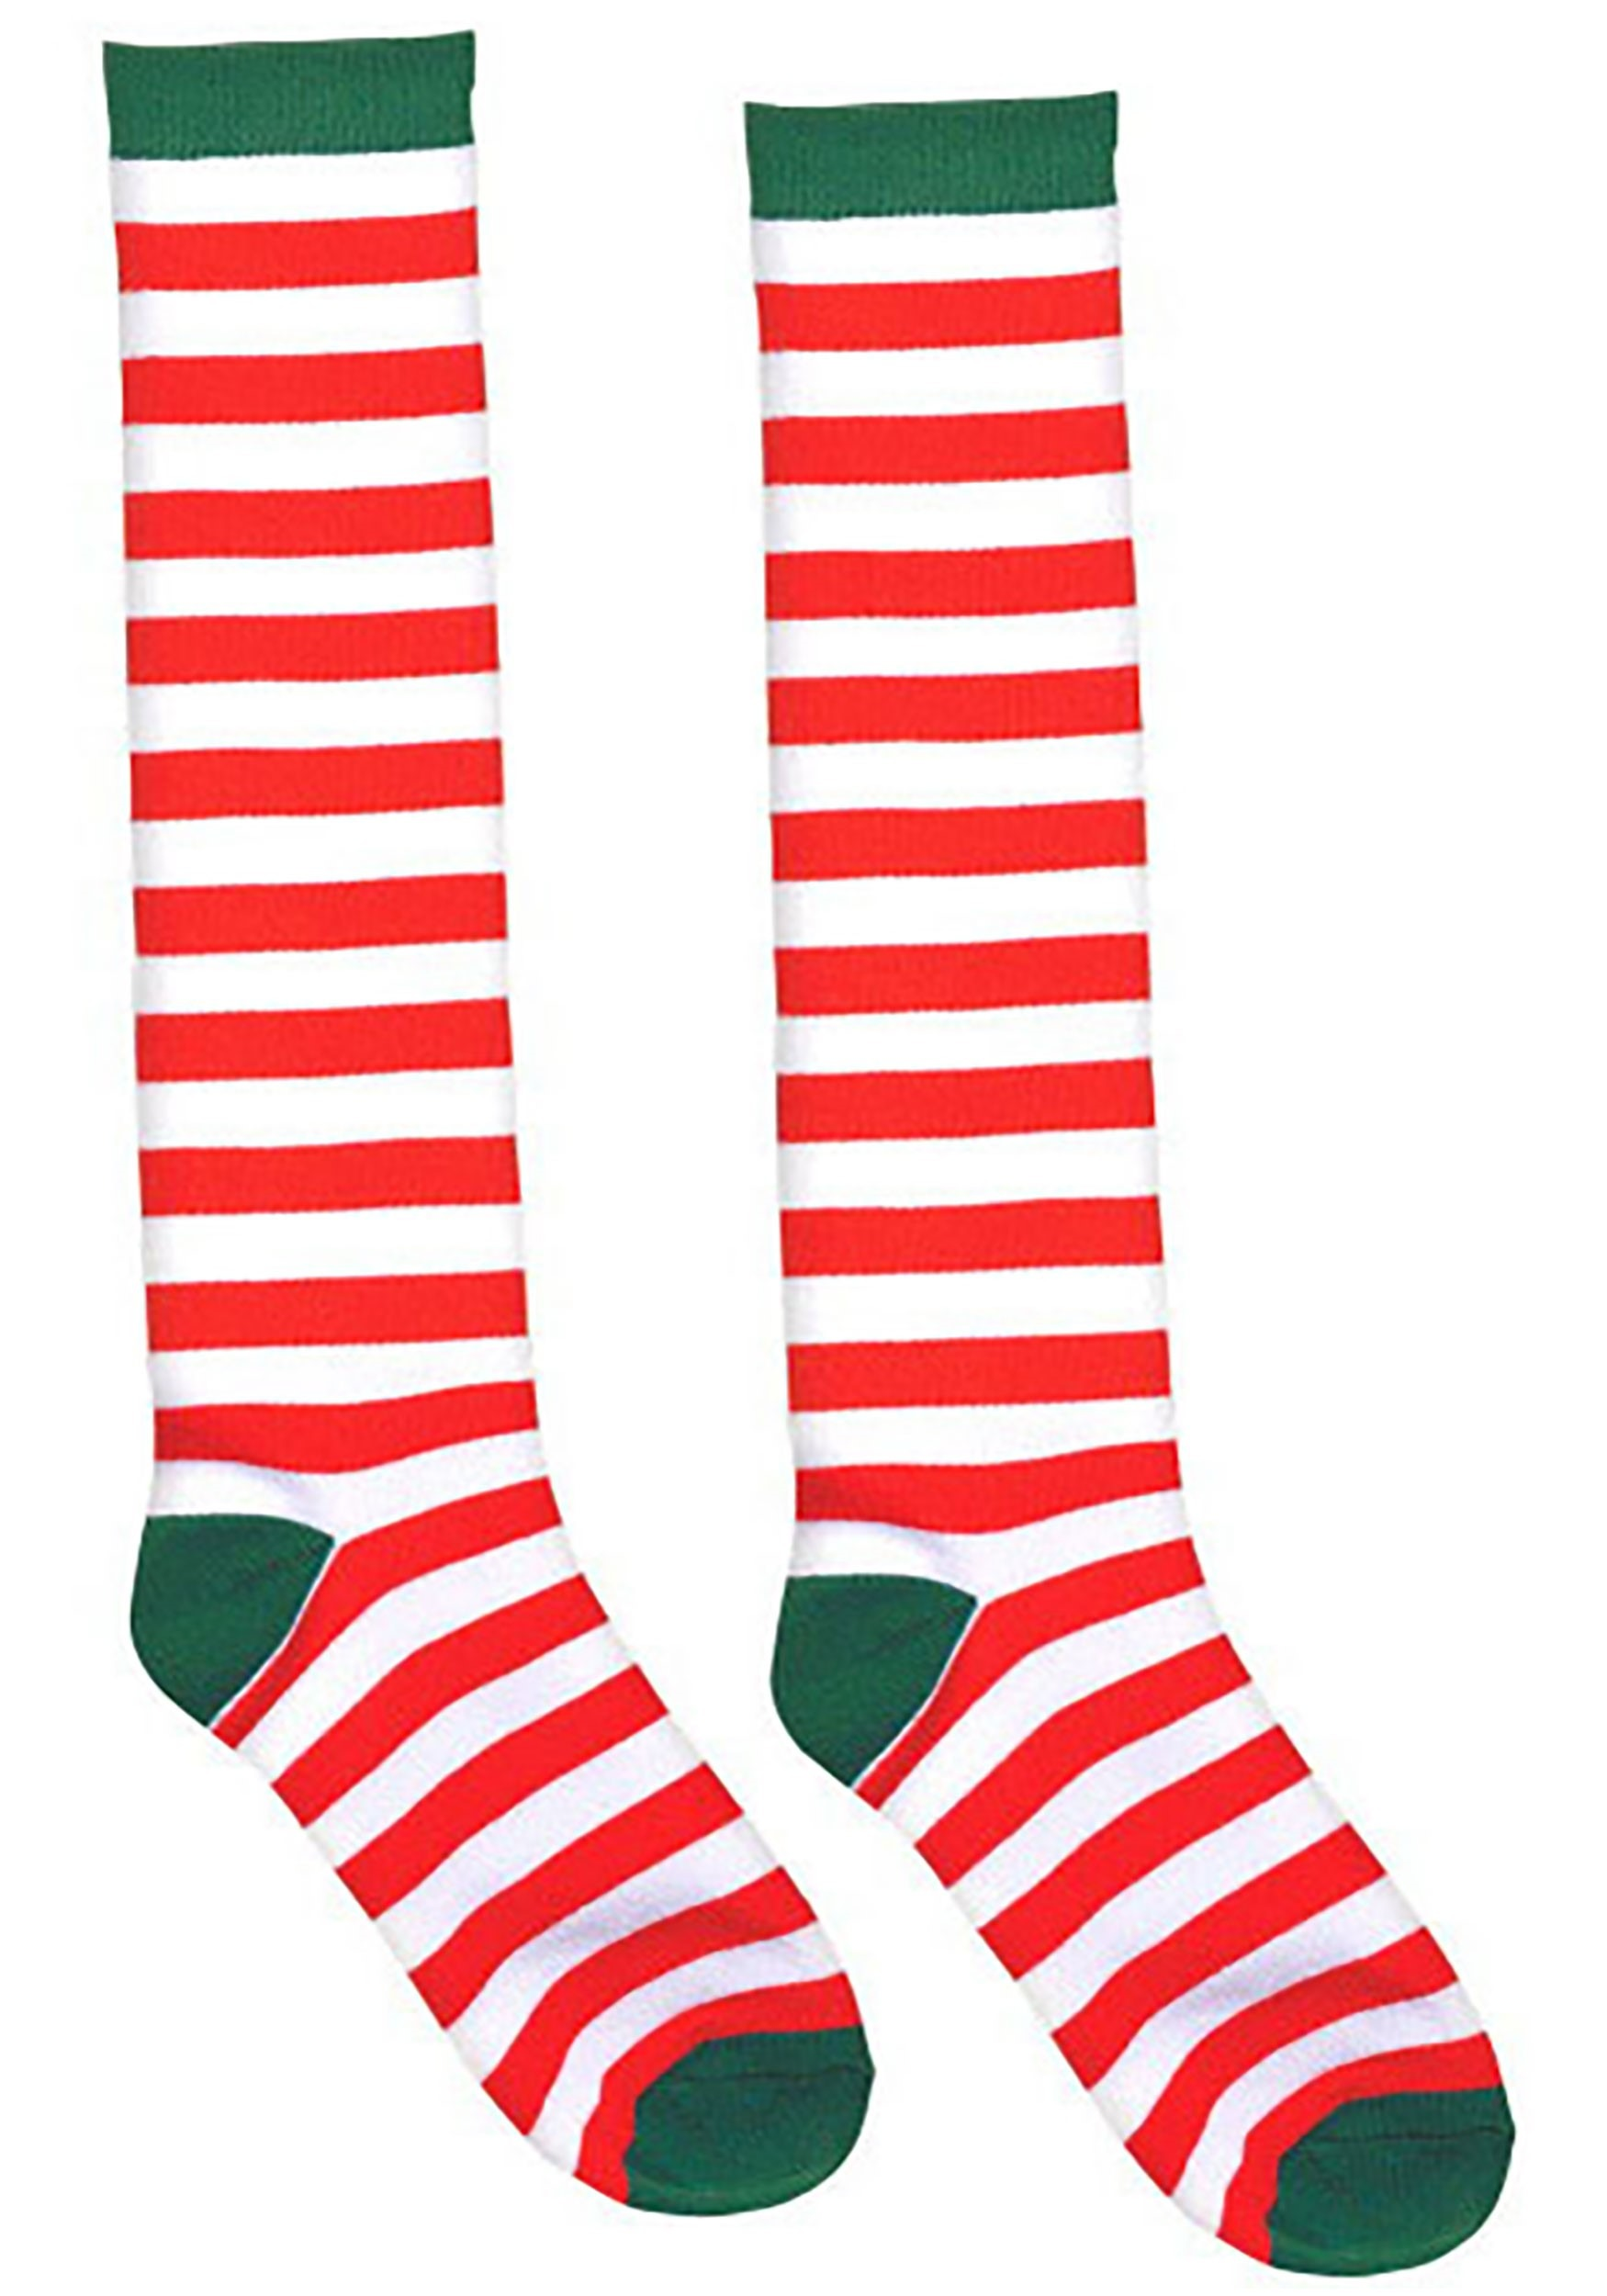 Adult White and Red Striped Socks